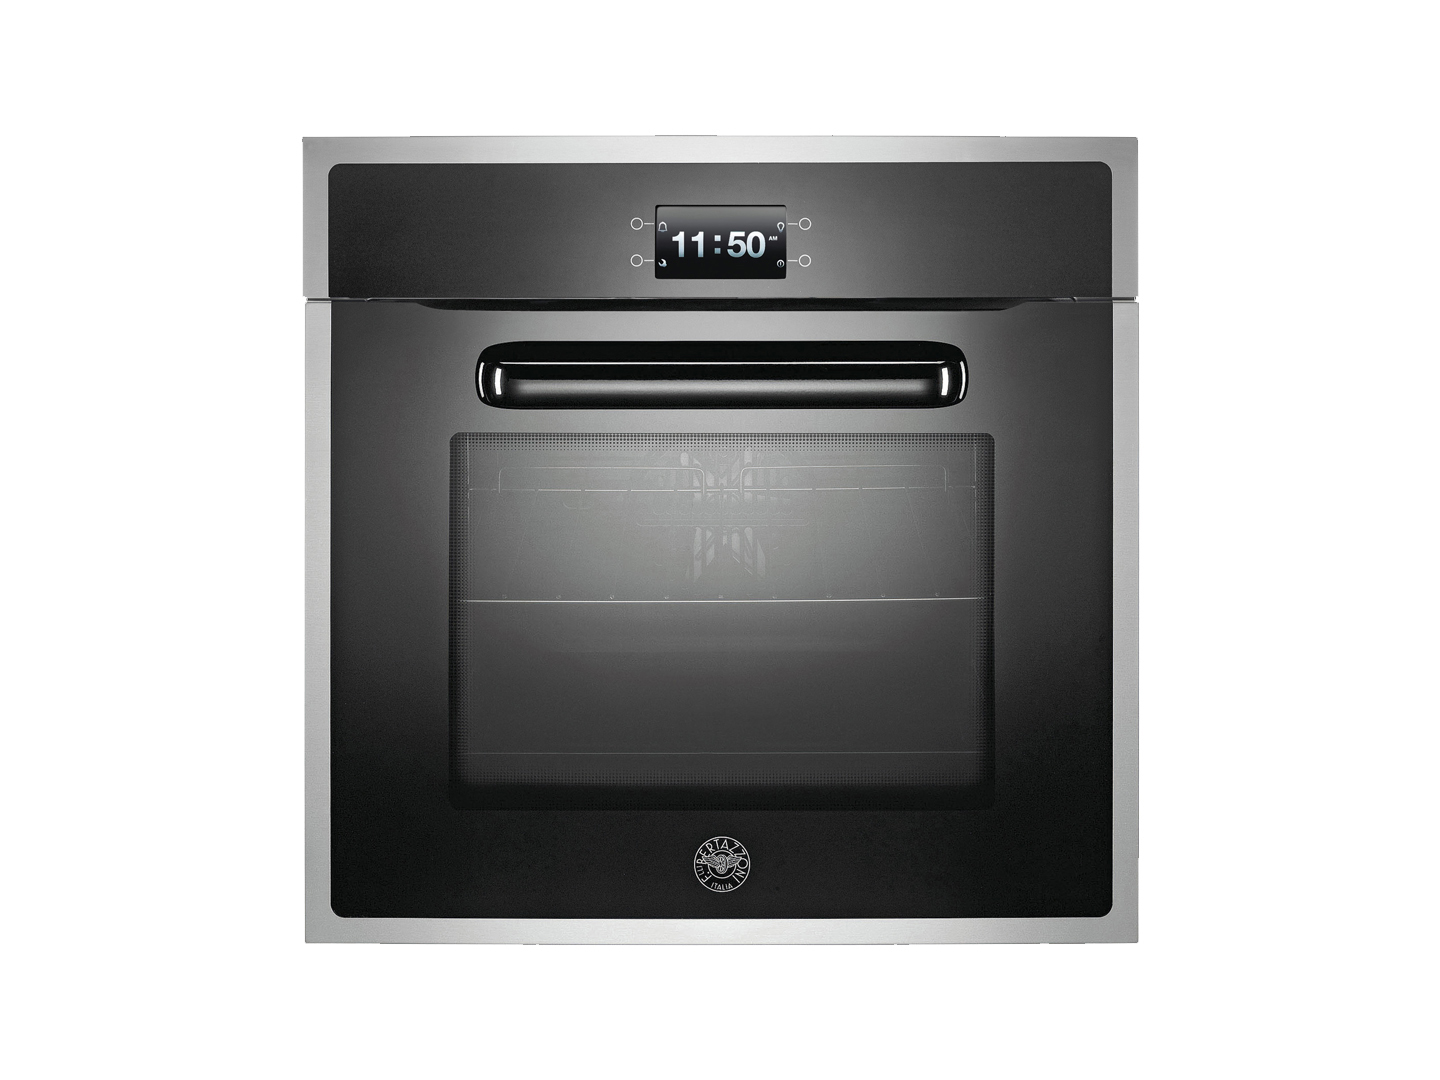 60 single oven XT | Bertazzoni - Black